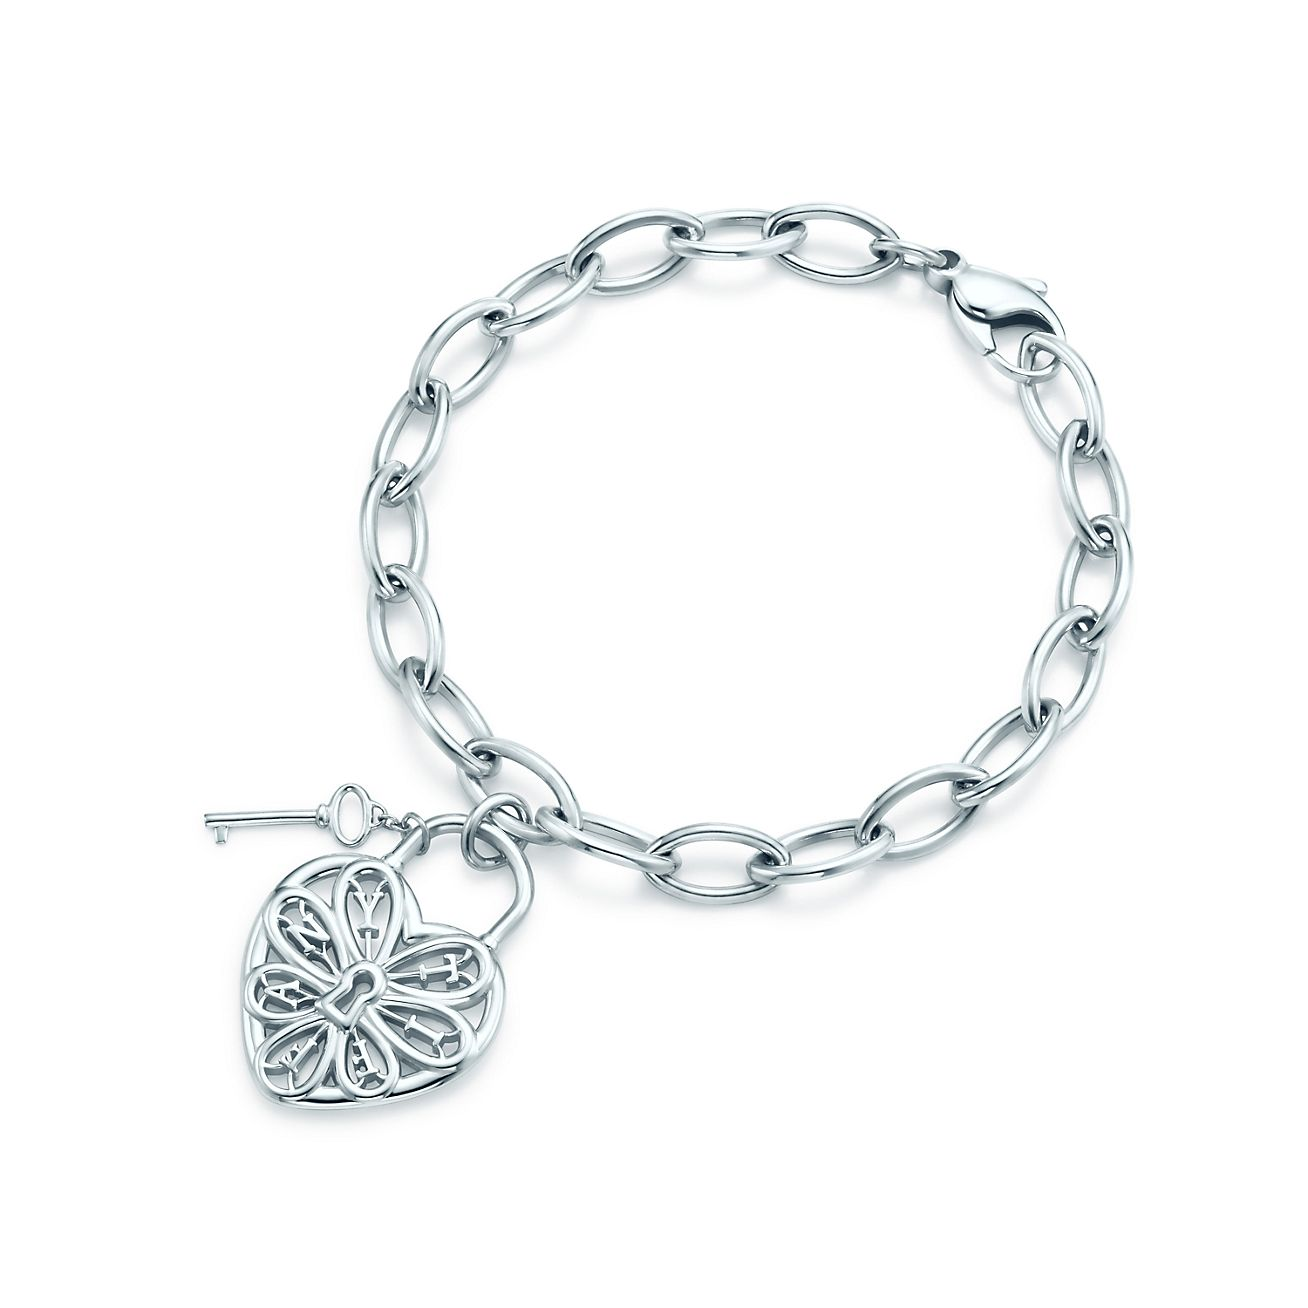 Tiffany Filigree Heart And Tag Bracelet With Key In Sterling